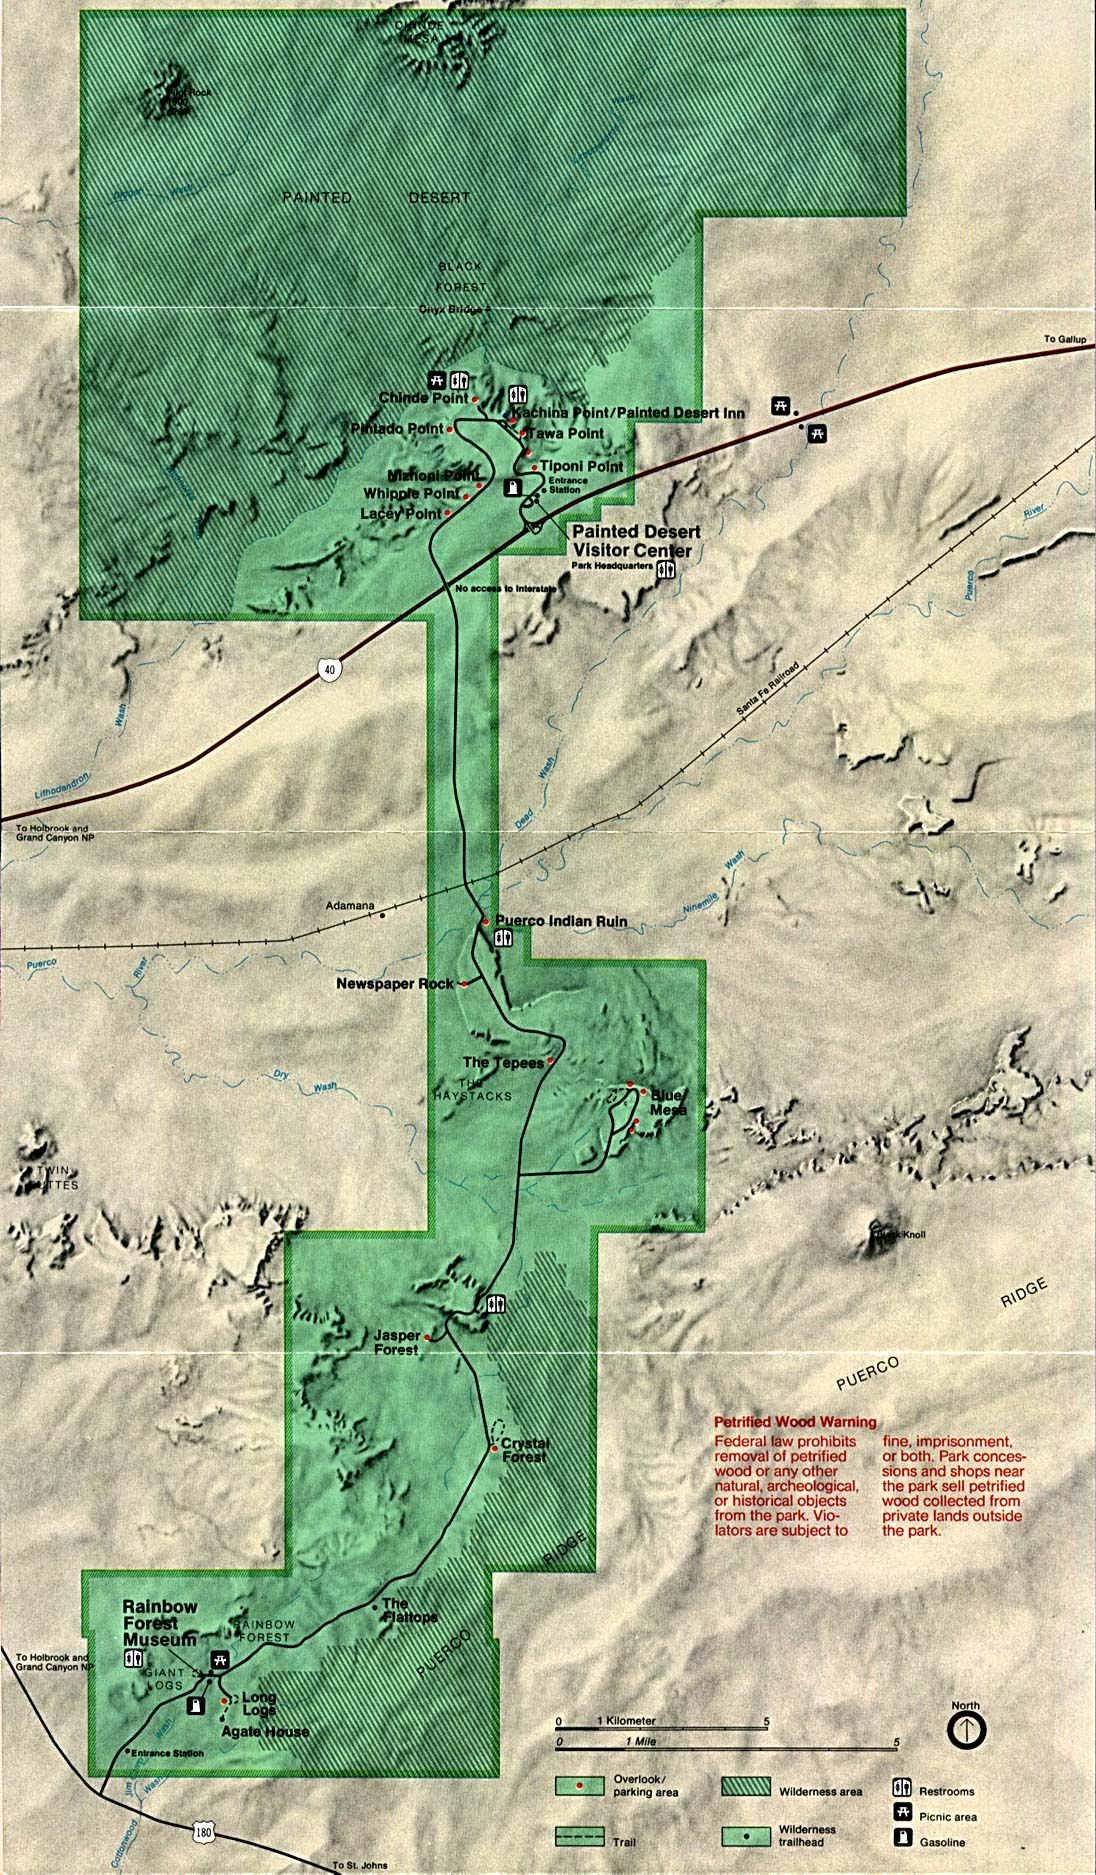 Petrified Forest National Park Map, Arizona, United States